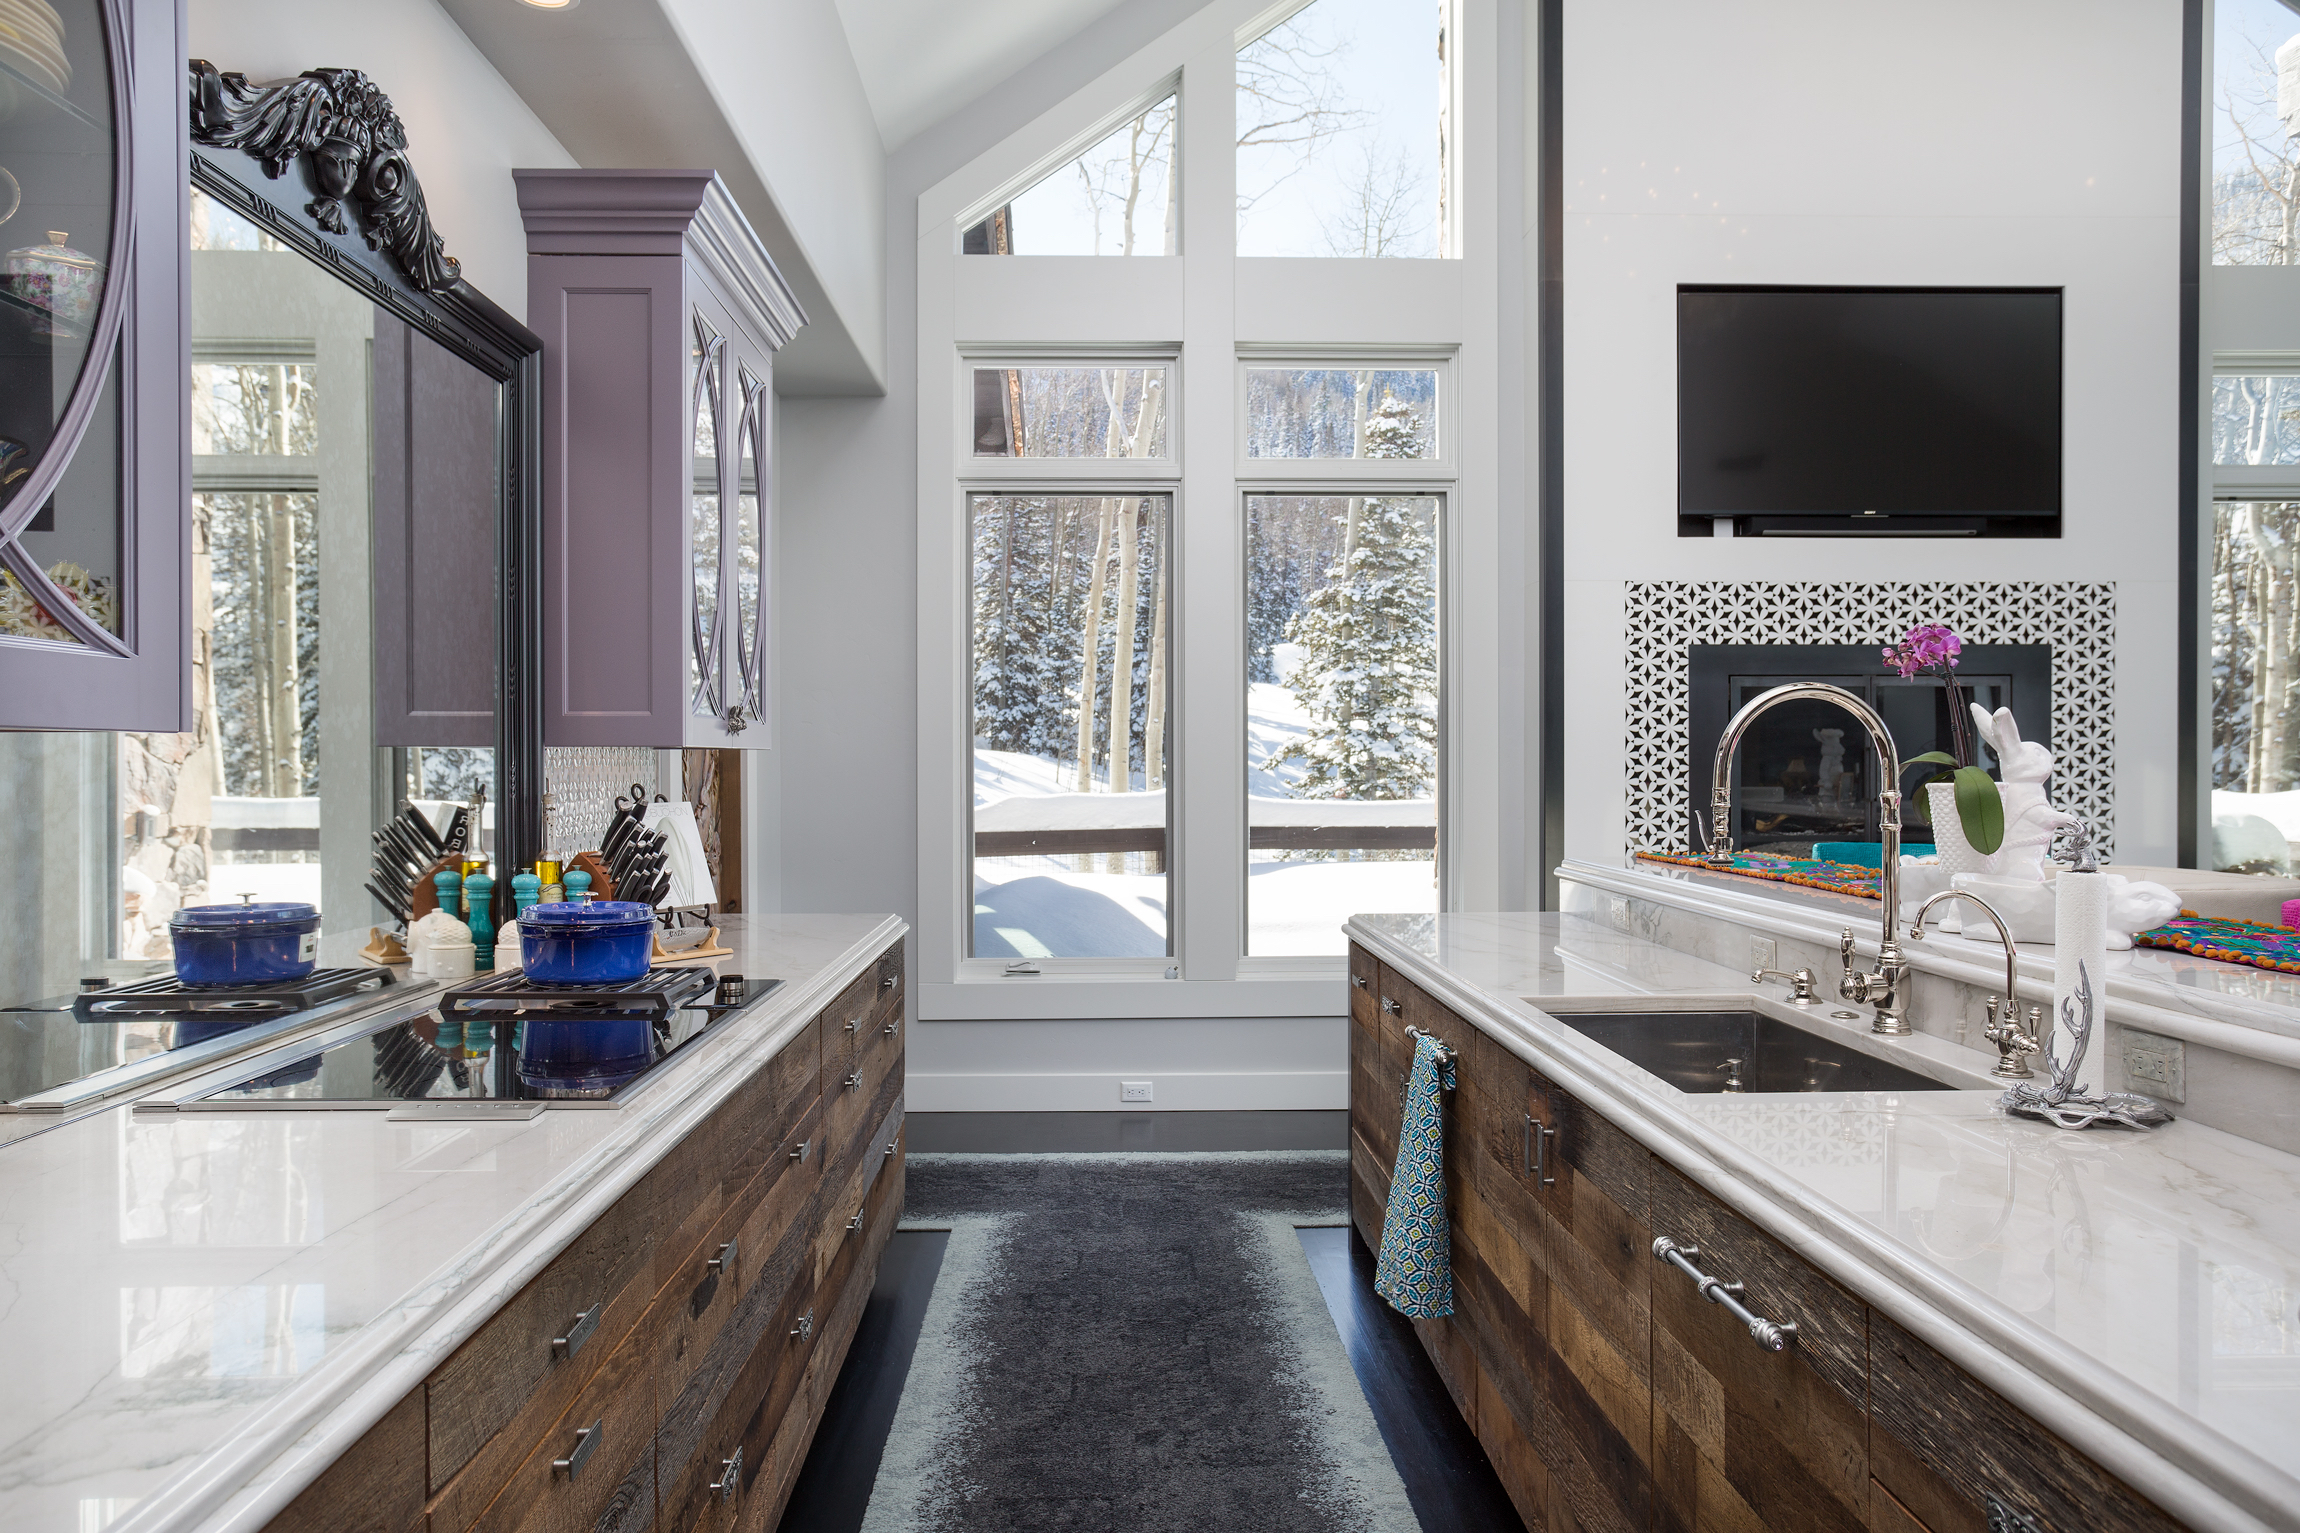 This Beautiful Park City Ski Resort Homes Kitchen Turned Out Absolutely Amazing And Its The Result Of Many Meetings With Client To Sort Through Her